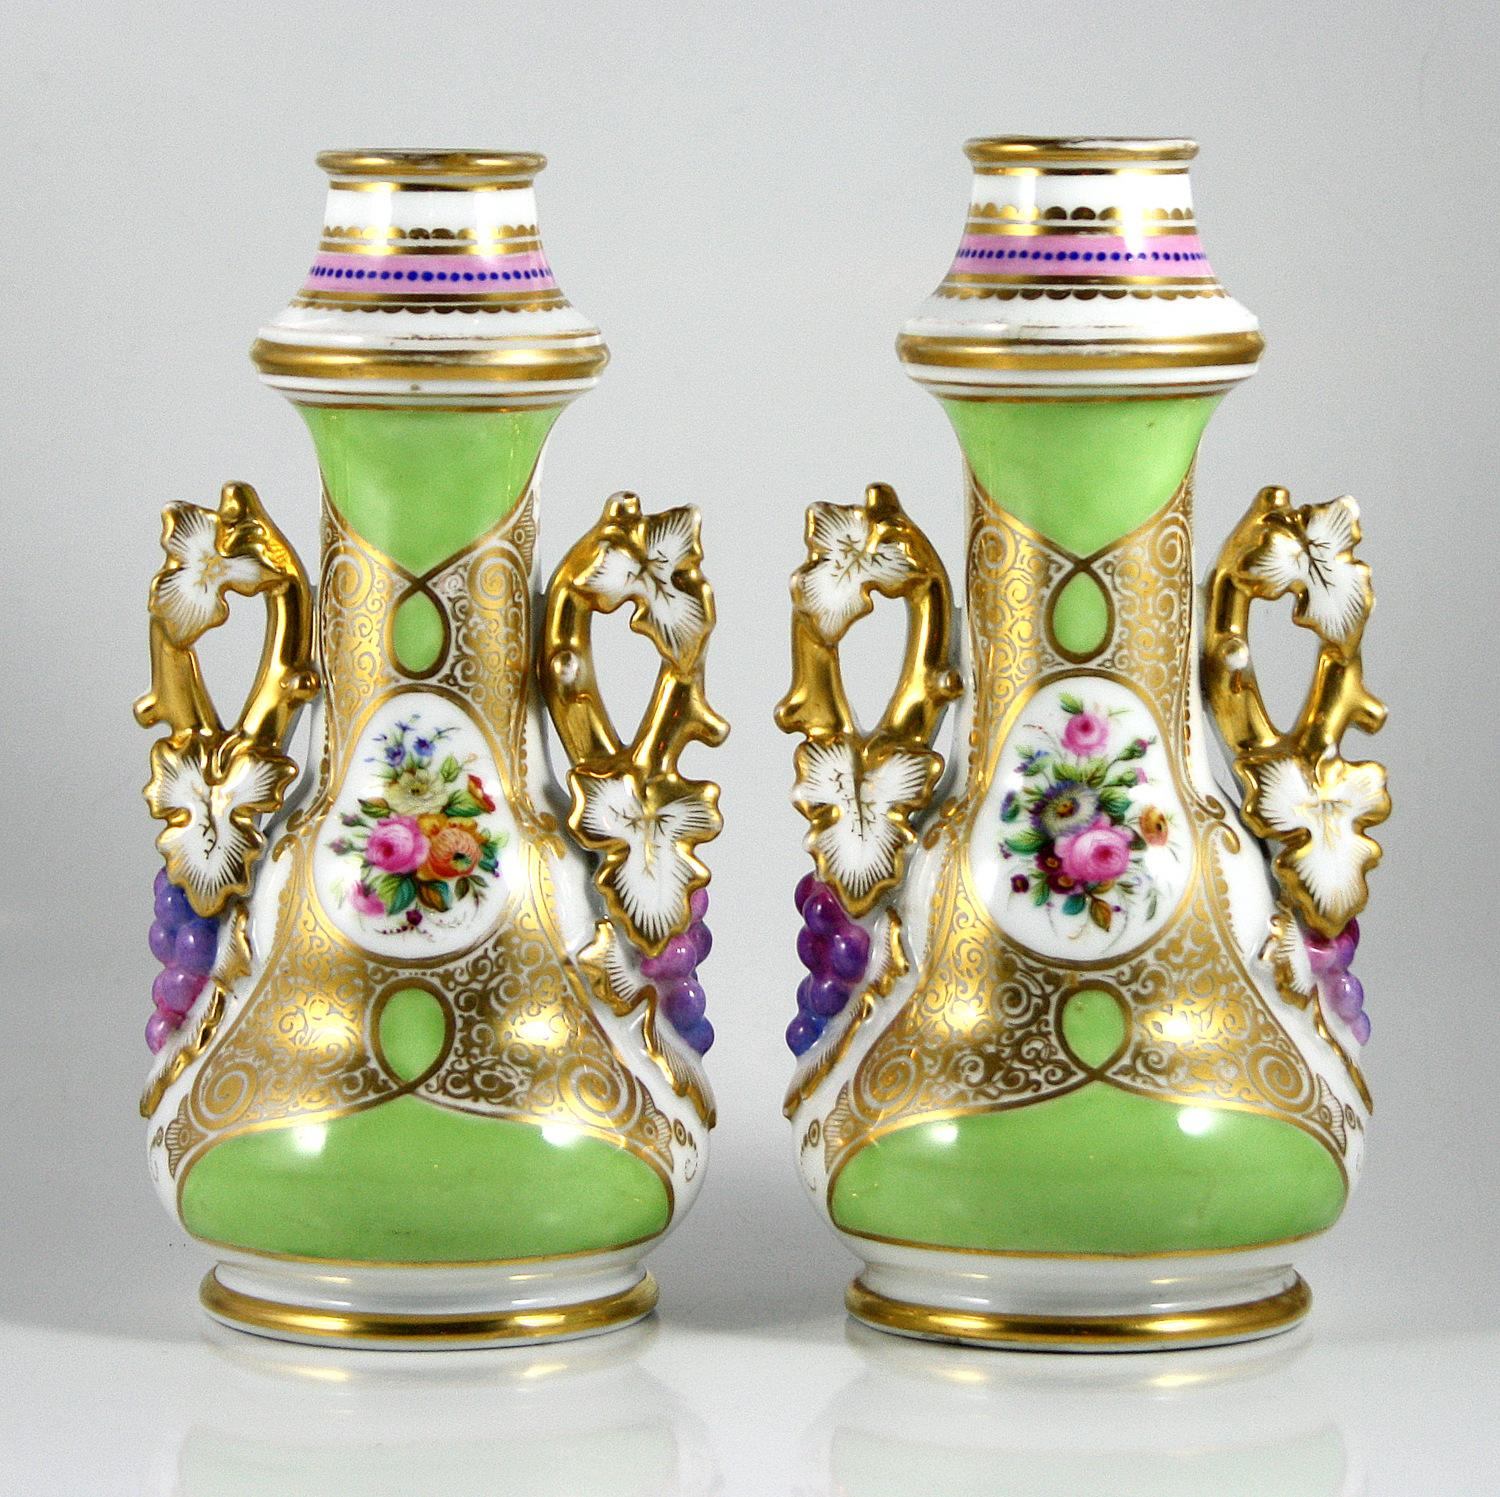 Pair of Isabelline Vases